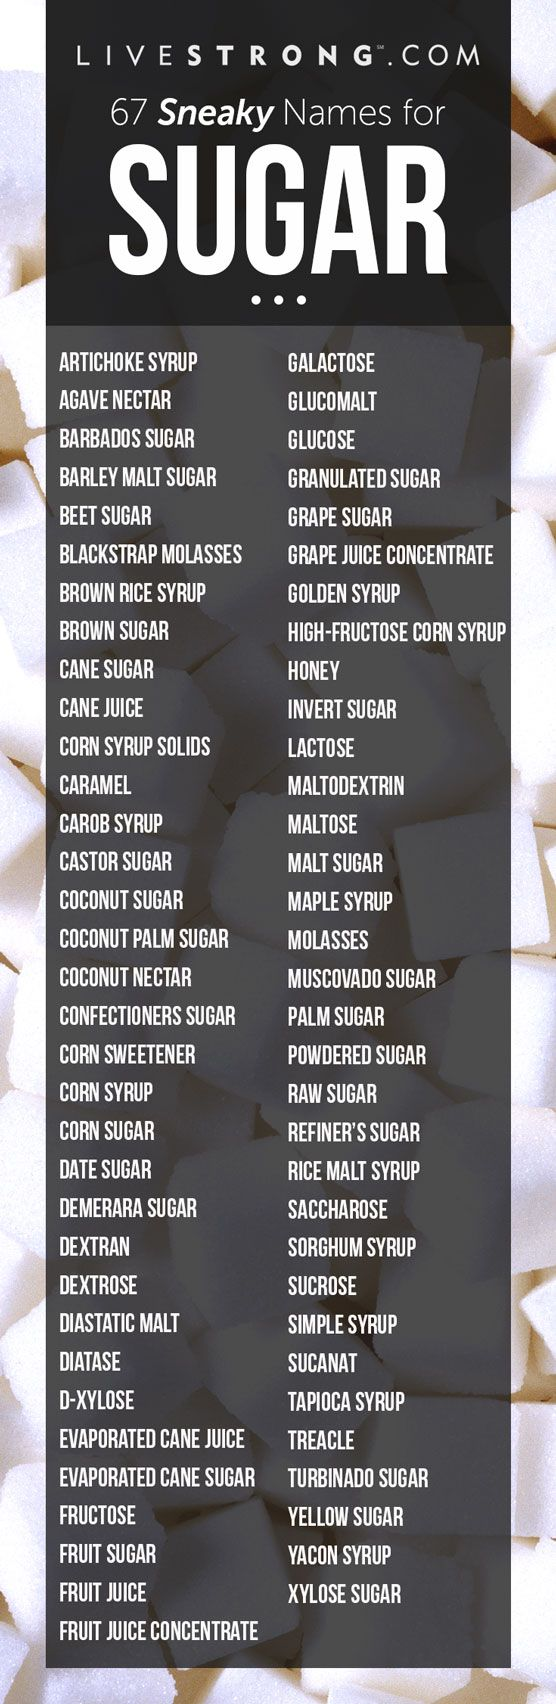 Would You Recognize These 67 Sneaky Names for Sugar? | LIVESTRONG.COM